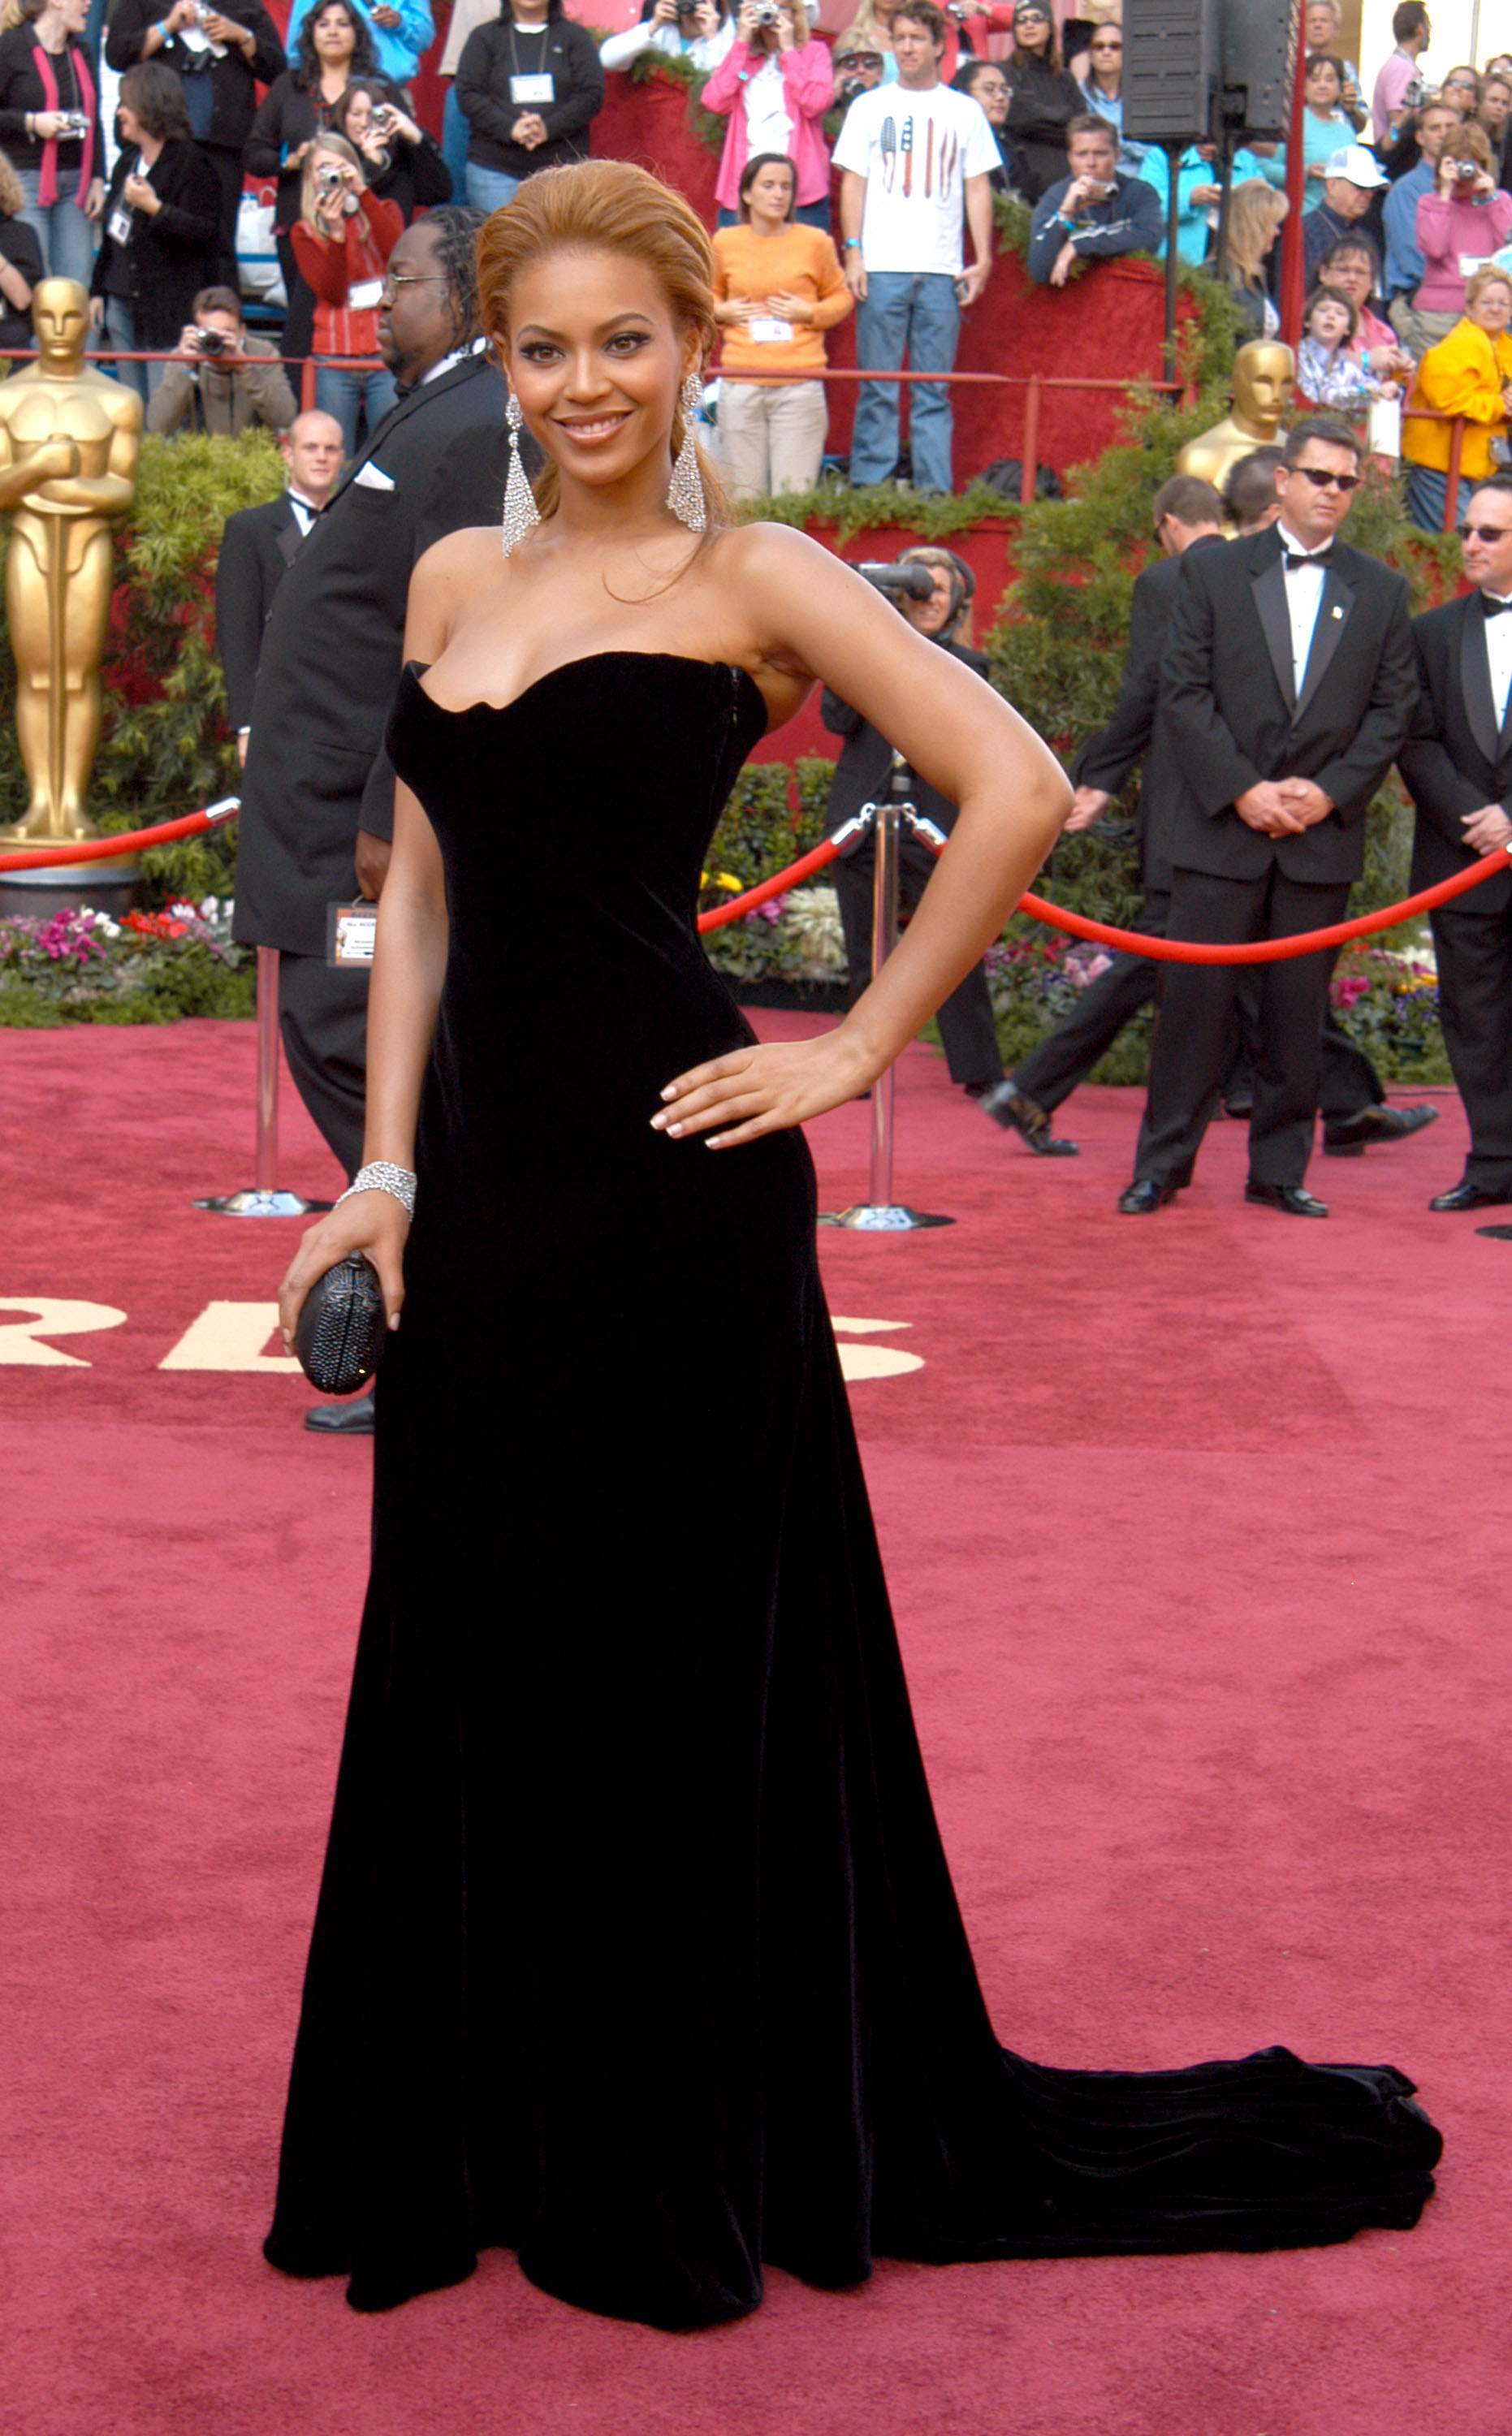 Beyonce during The 77th Annual Academy Awards - Arrivals at Kodak Theatre in Hollywood, California, United States. (Photo by Ron Galella/WireImage)